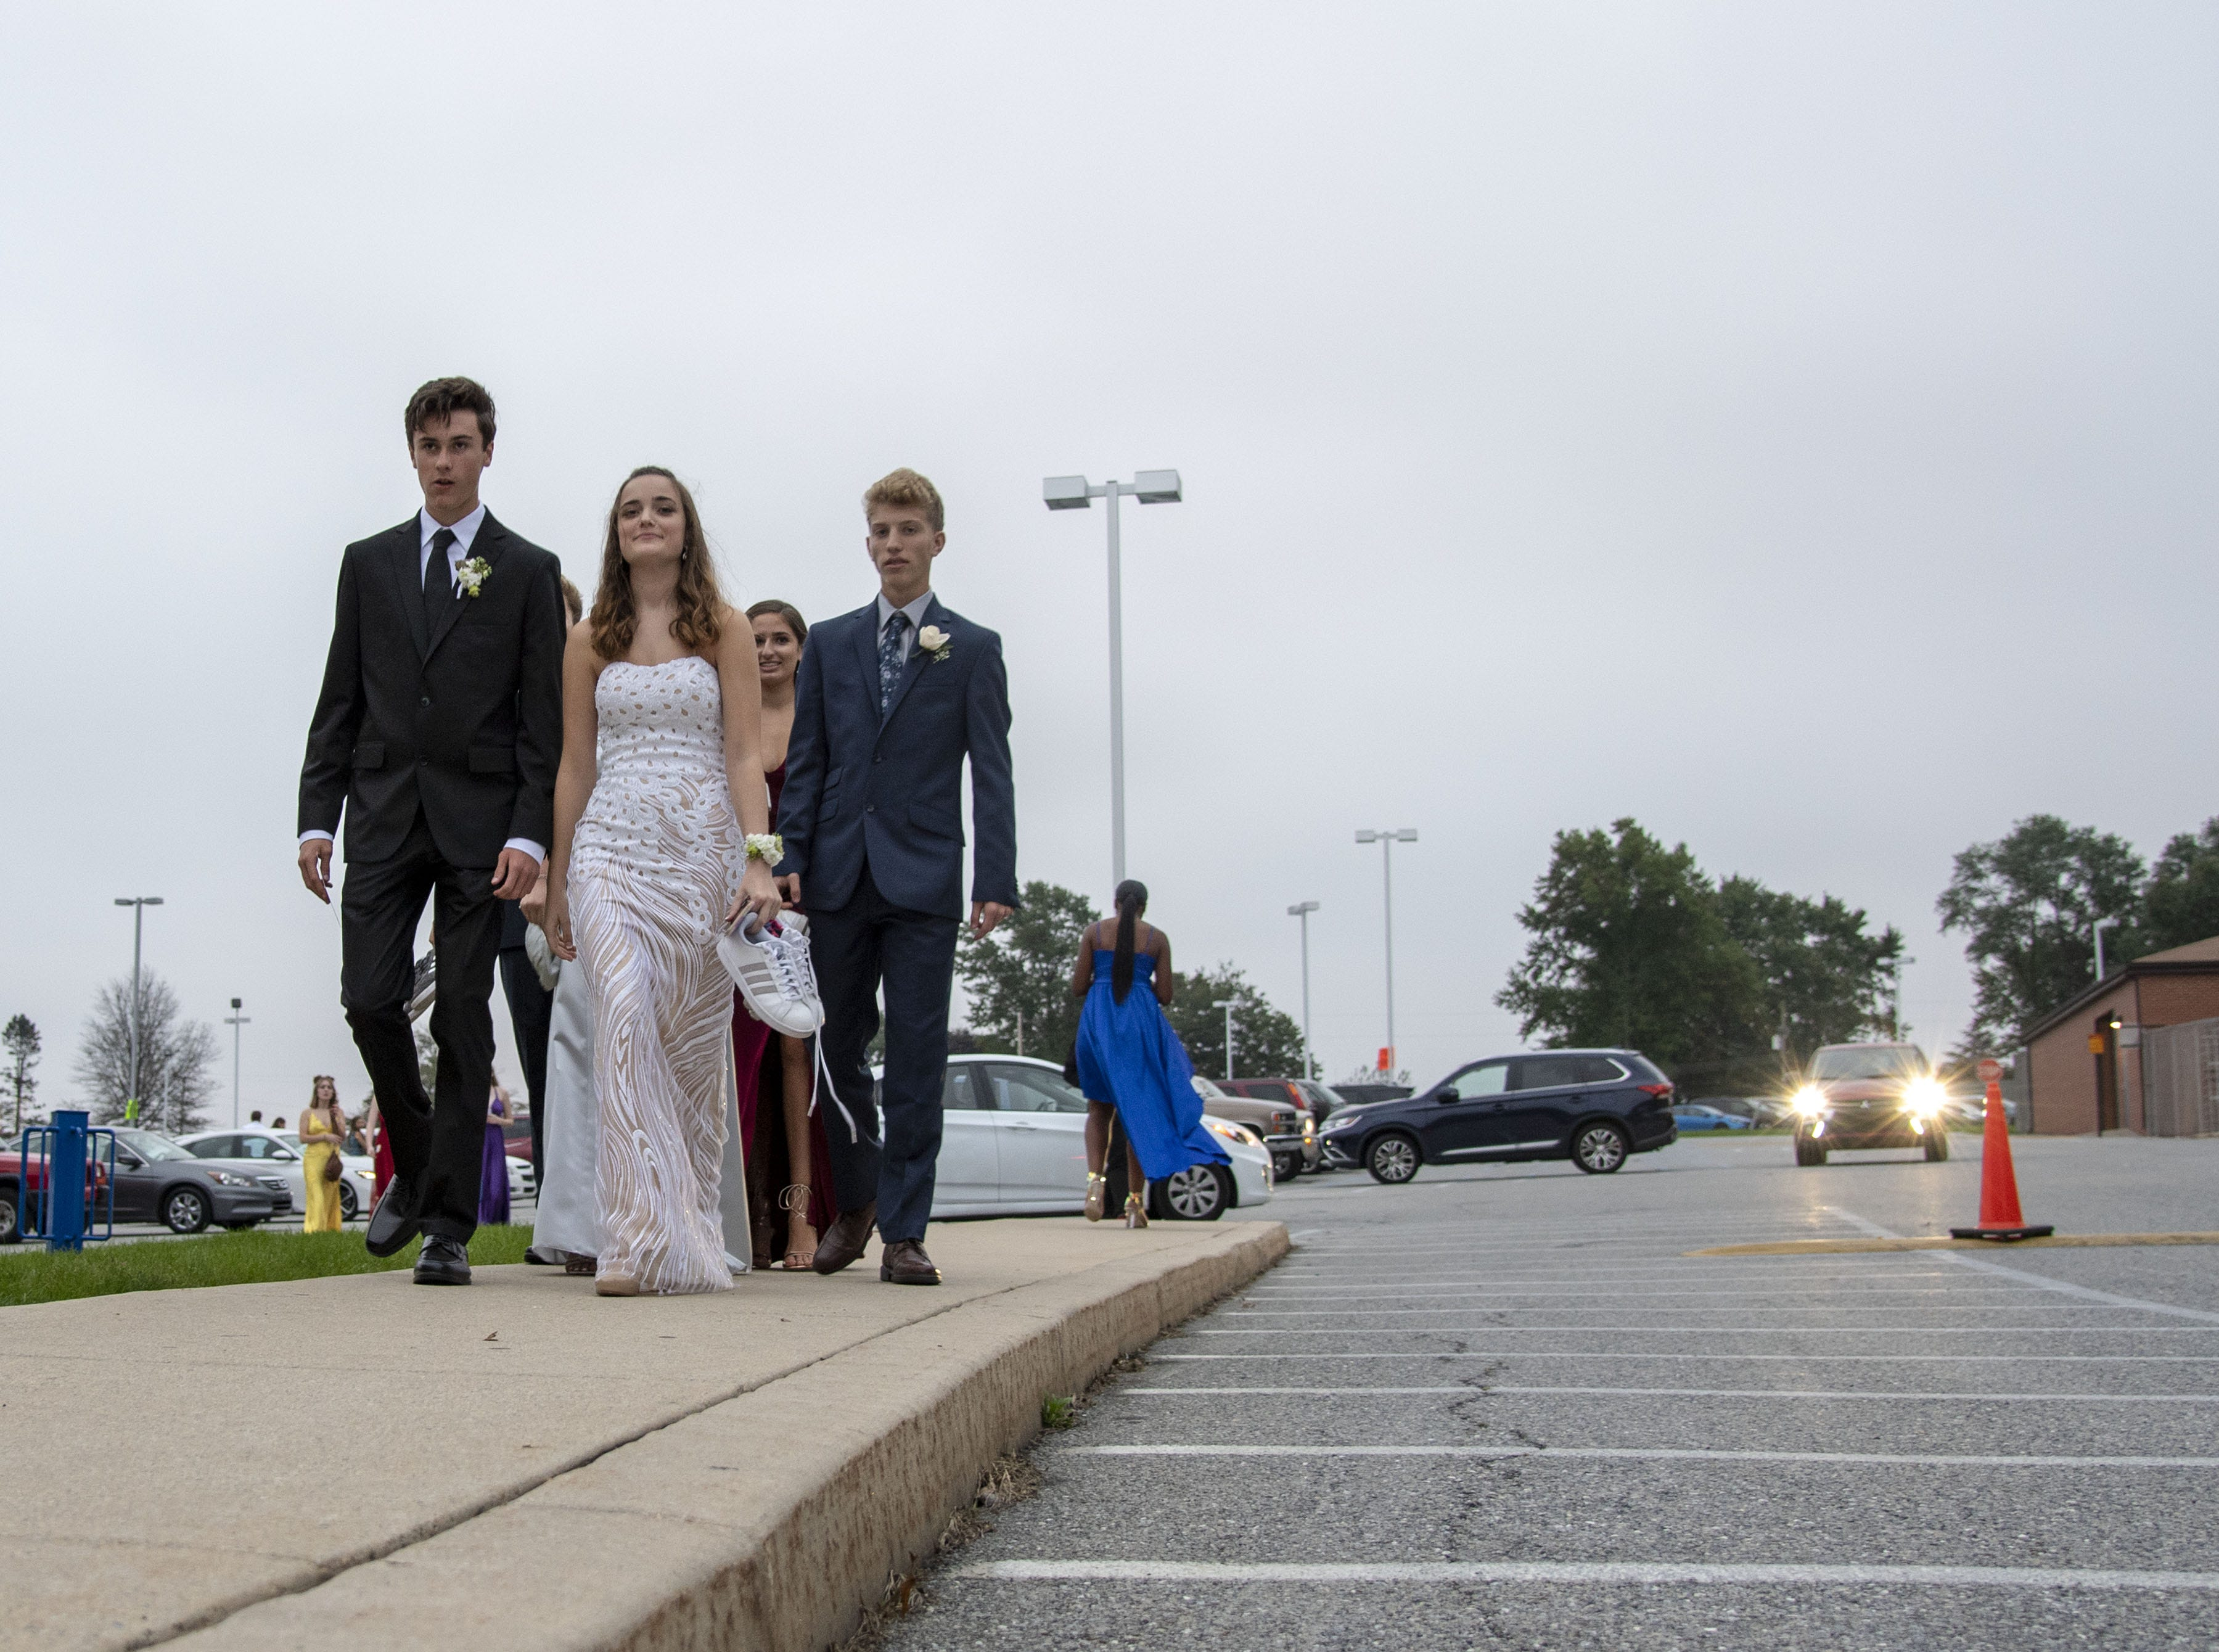 Students attend the Dallastown High School homecoming dance on Saturday, October 06, 2018.